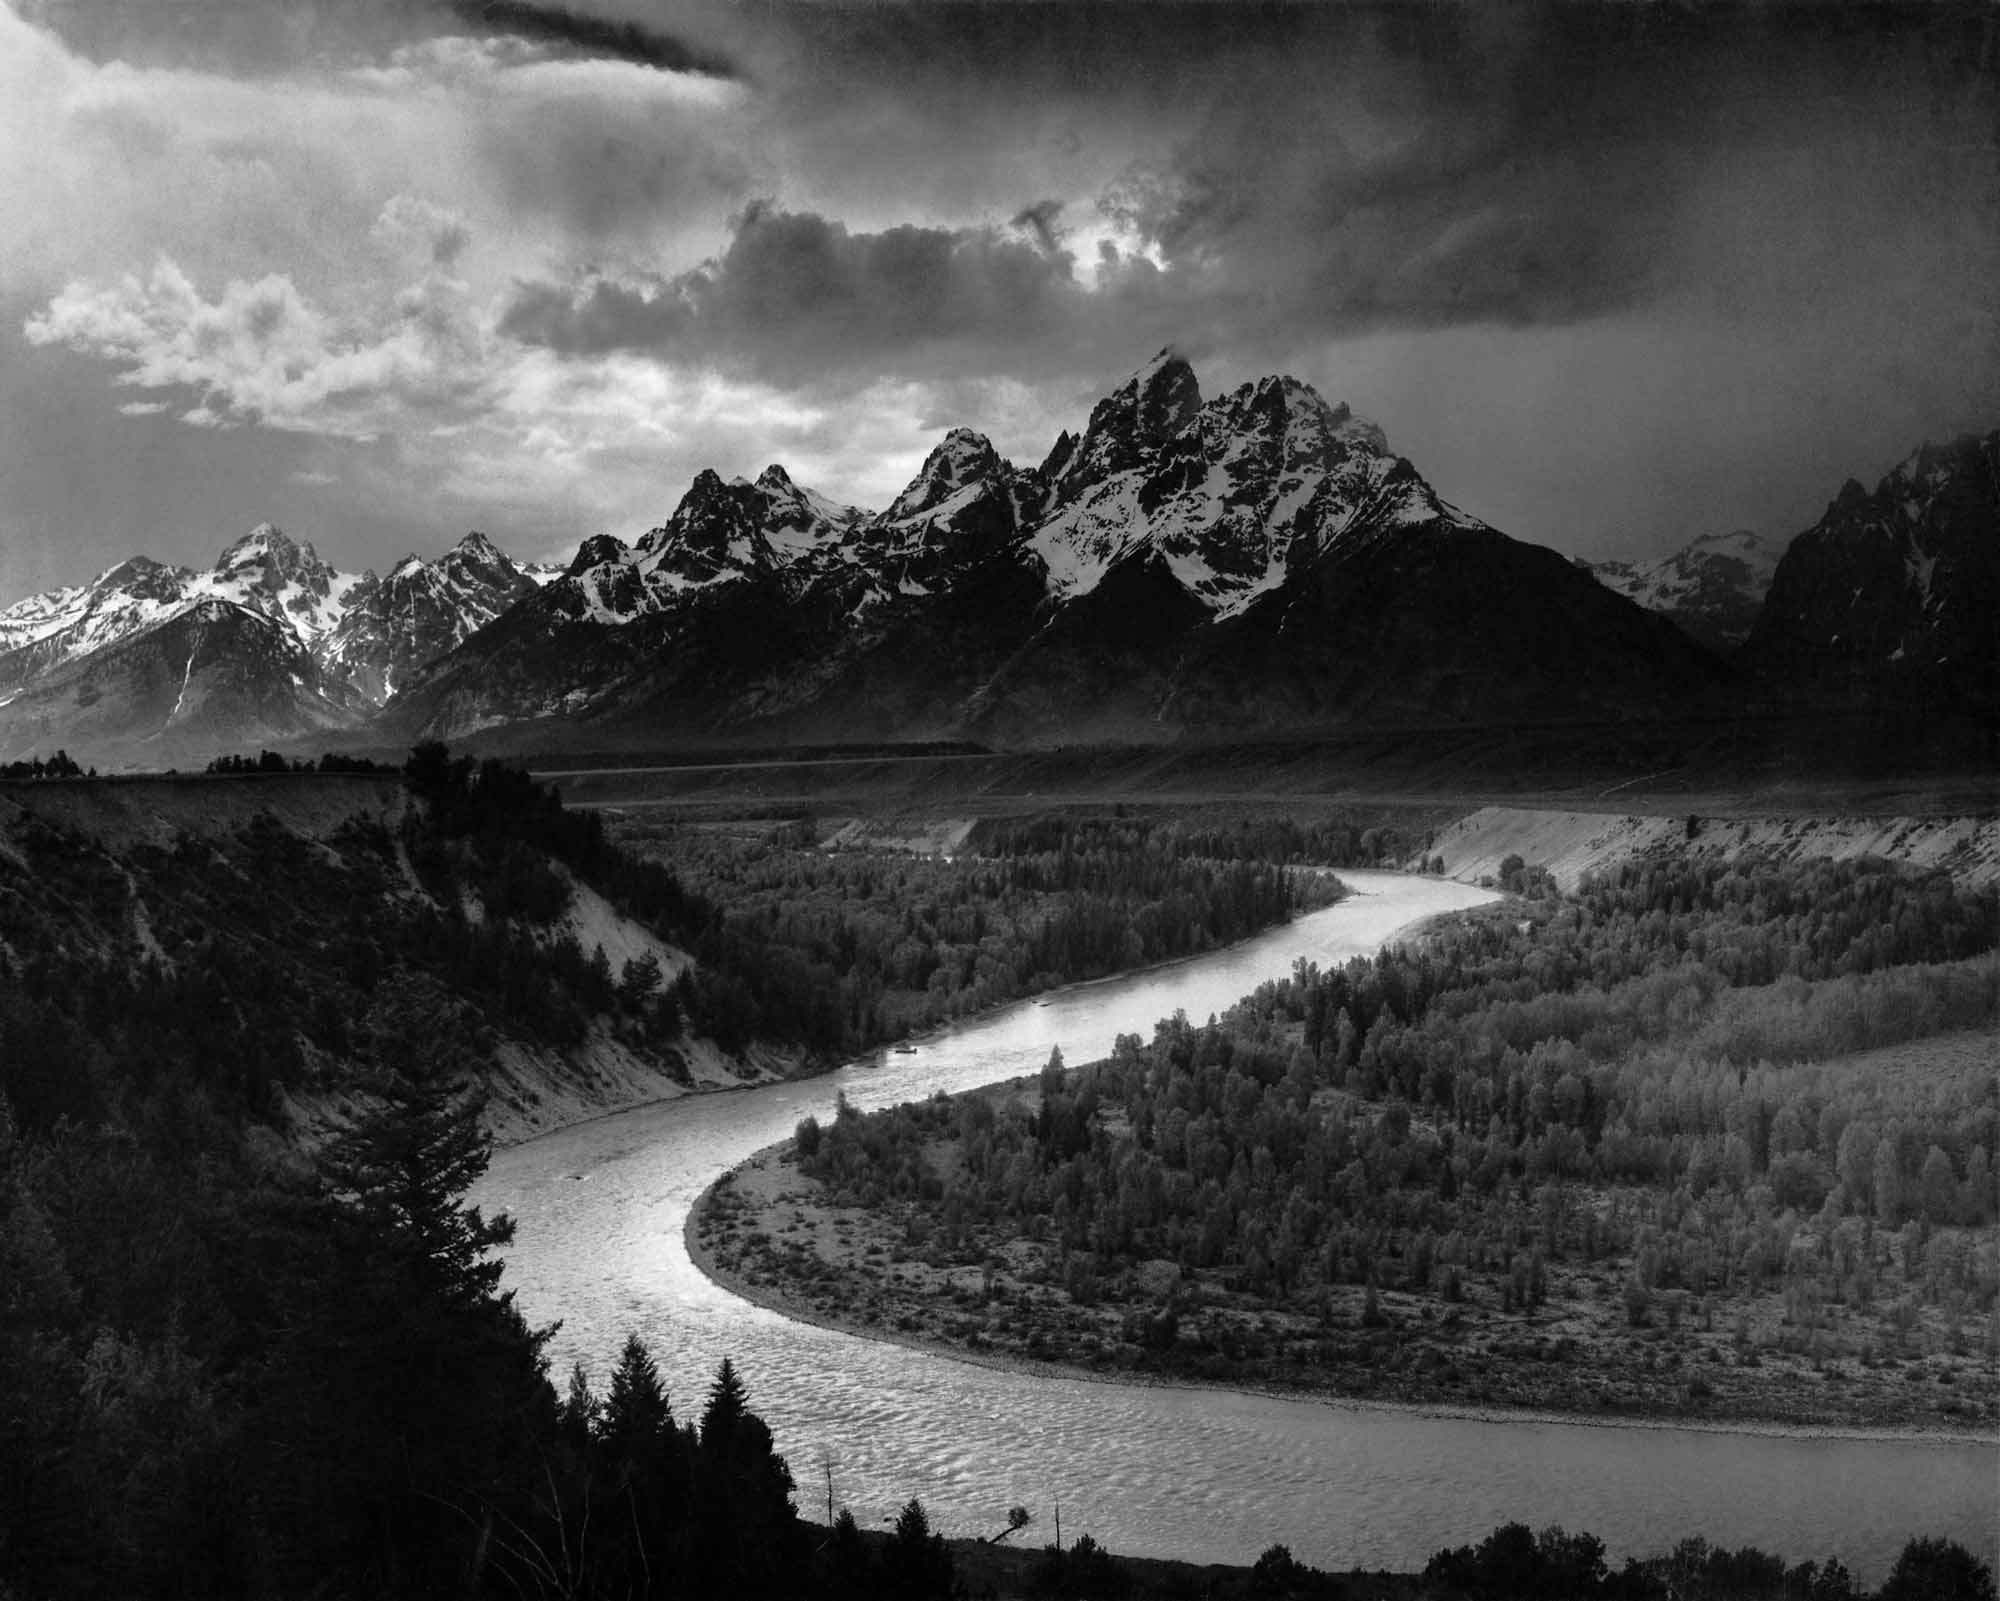 ansel-Adams_The_Tetons_and_the_Snake_River